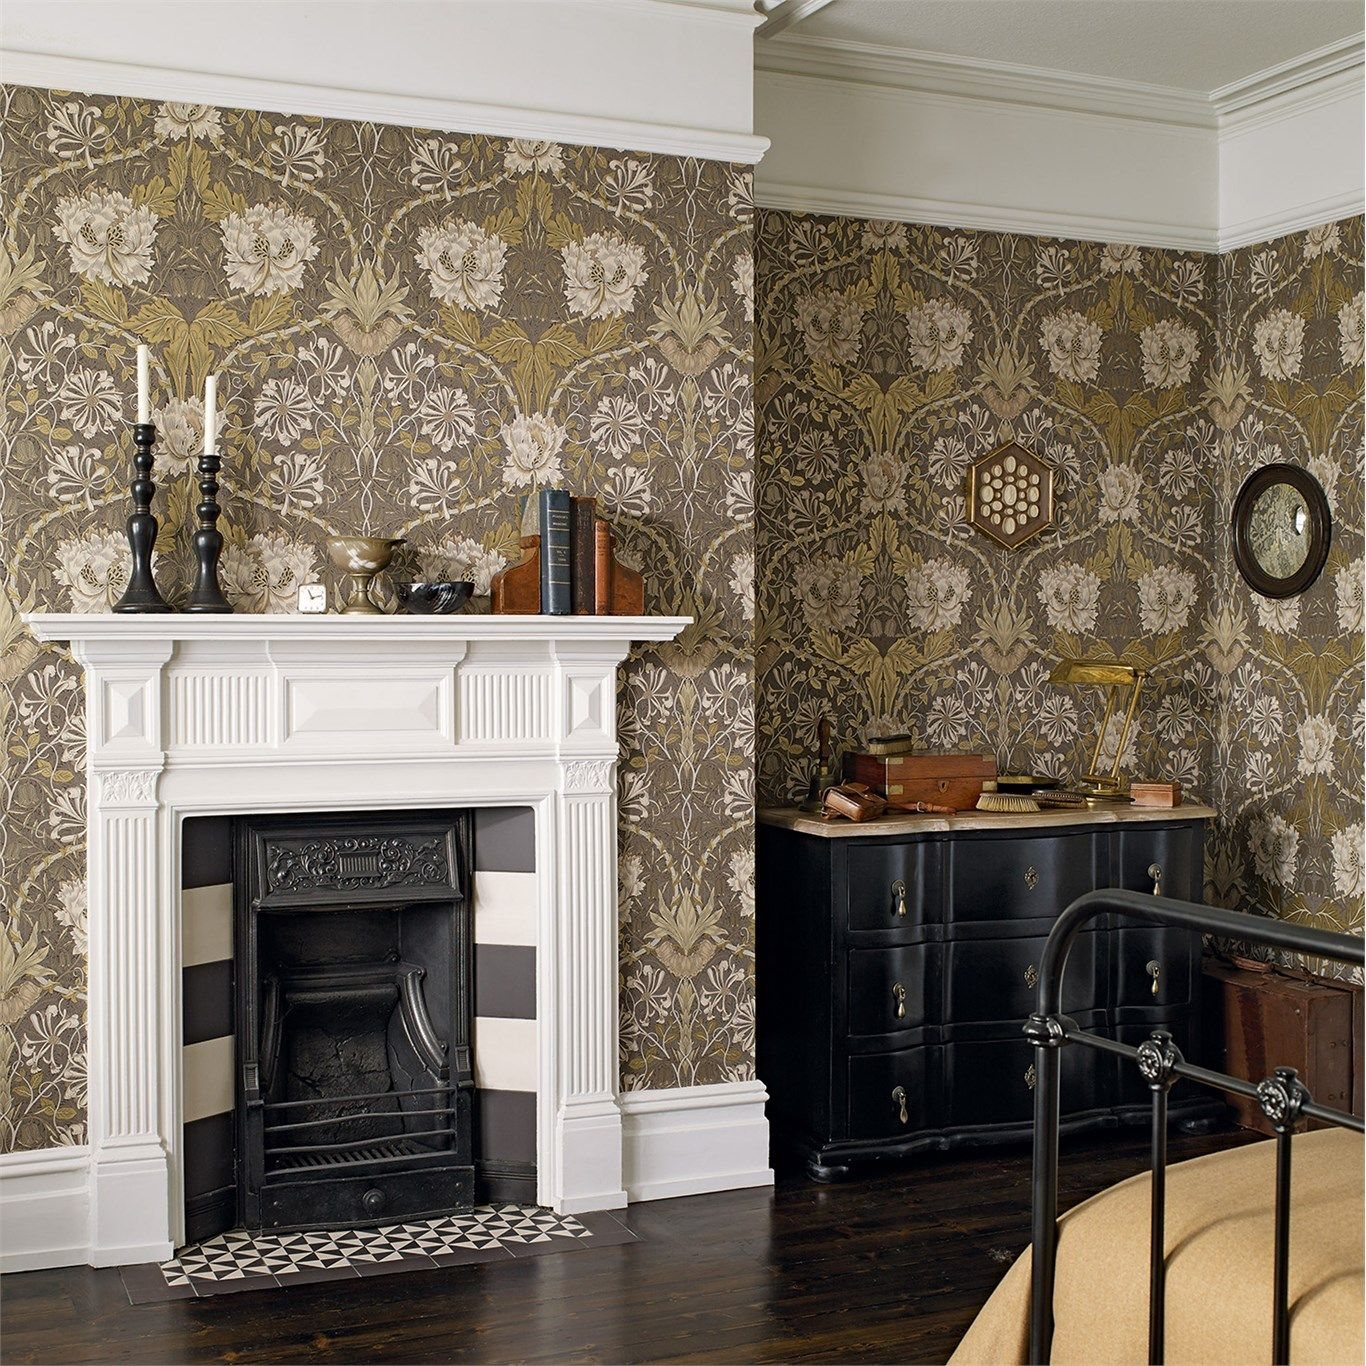 The Original Morris Co Arts And Crafts Fabrics And Wallpaper Designs By William Morri Arts And Crafts Interiors Morris Wallpapers William Morris Wallpaper